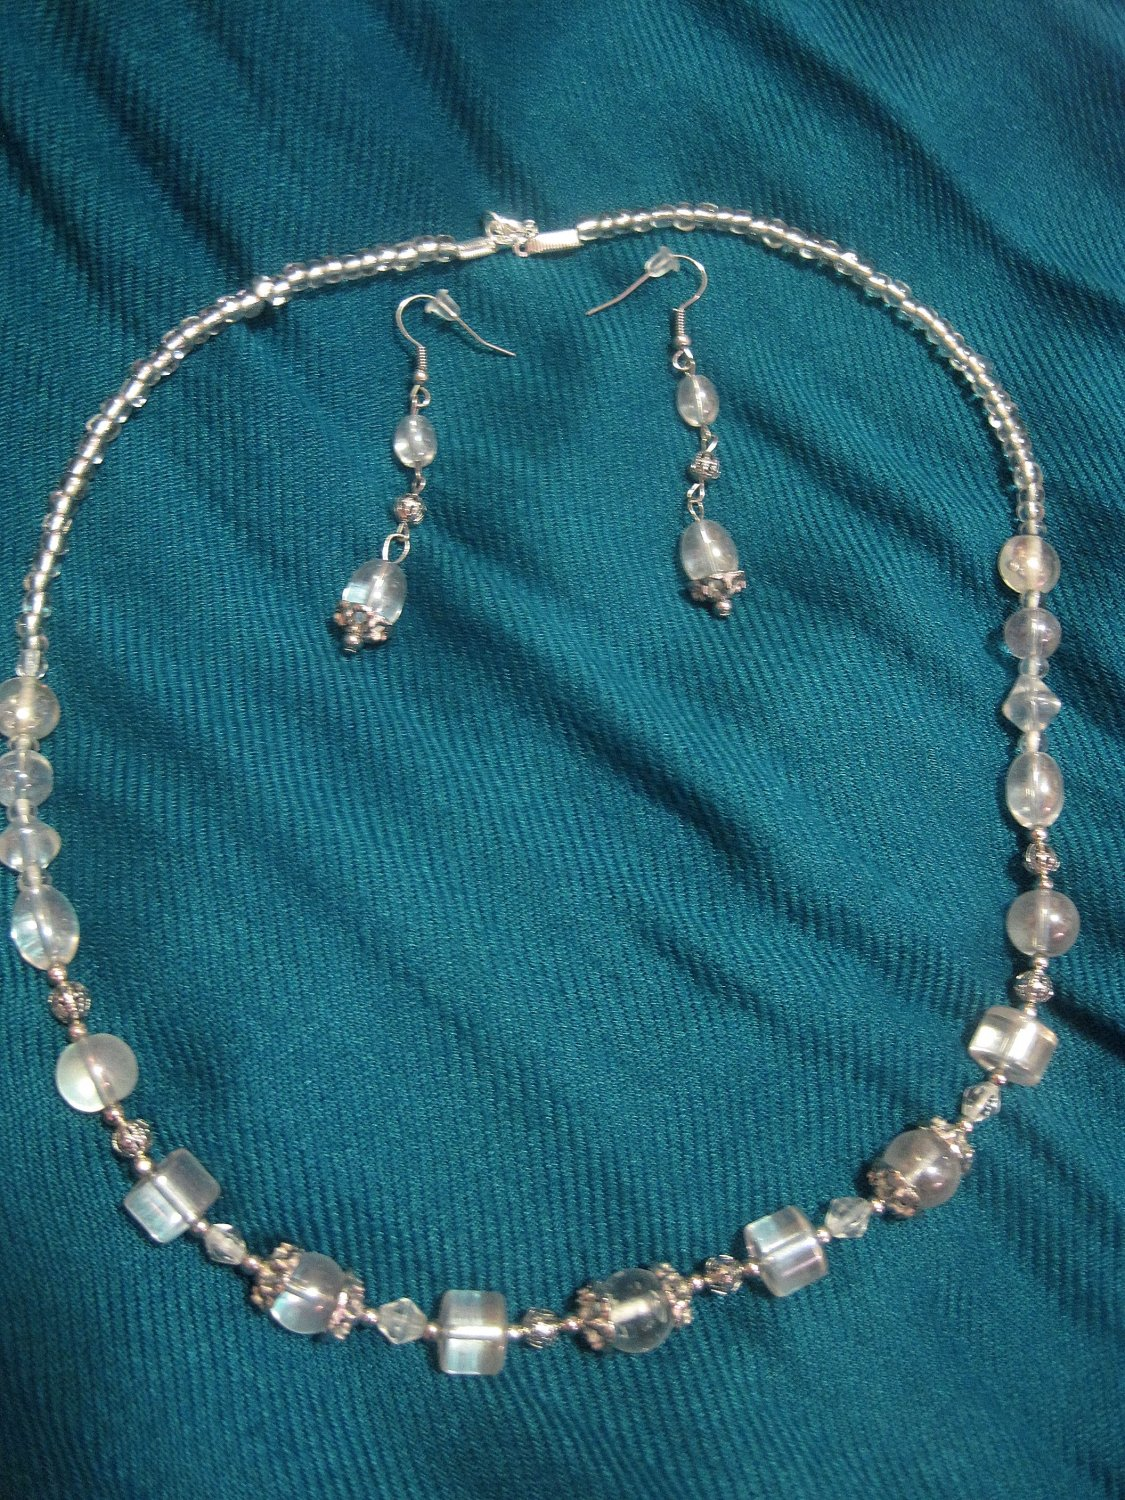 Necklace/Earring Set with Clear Glass Beads